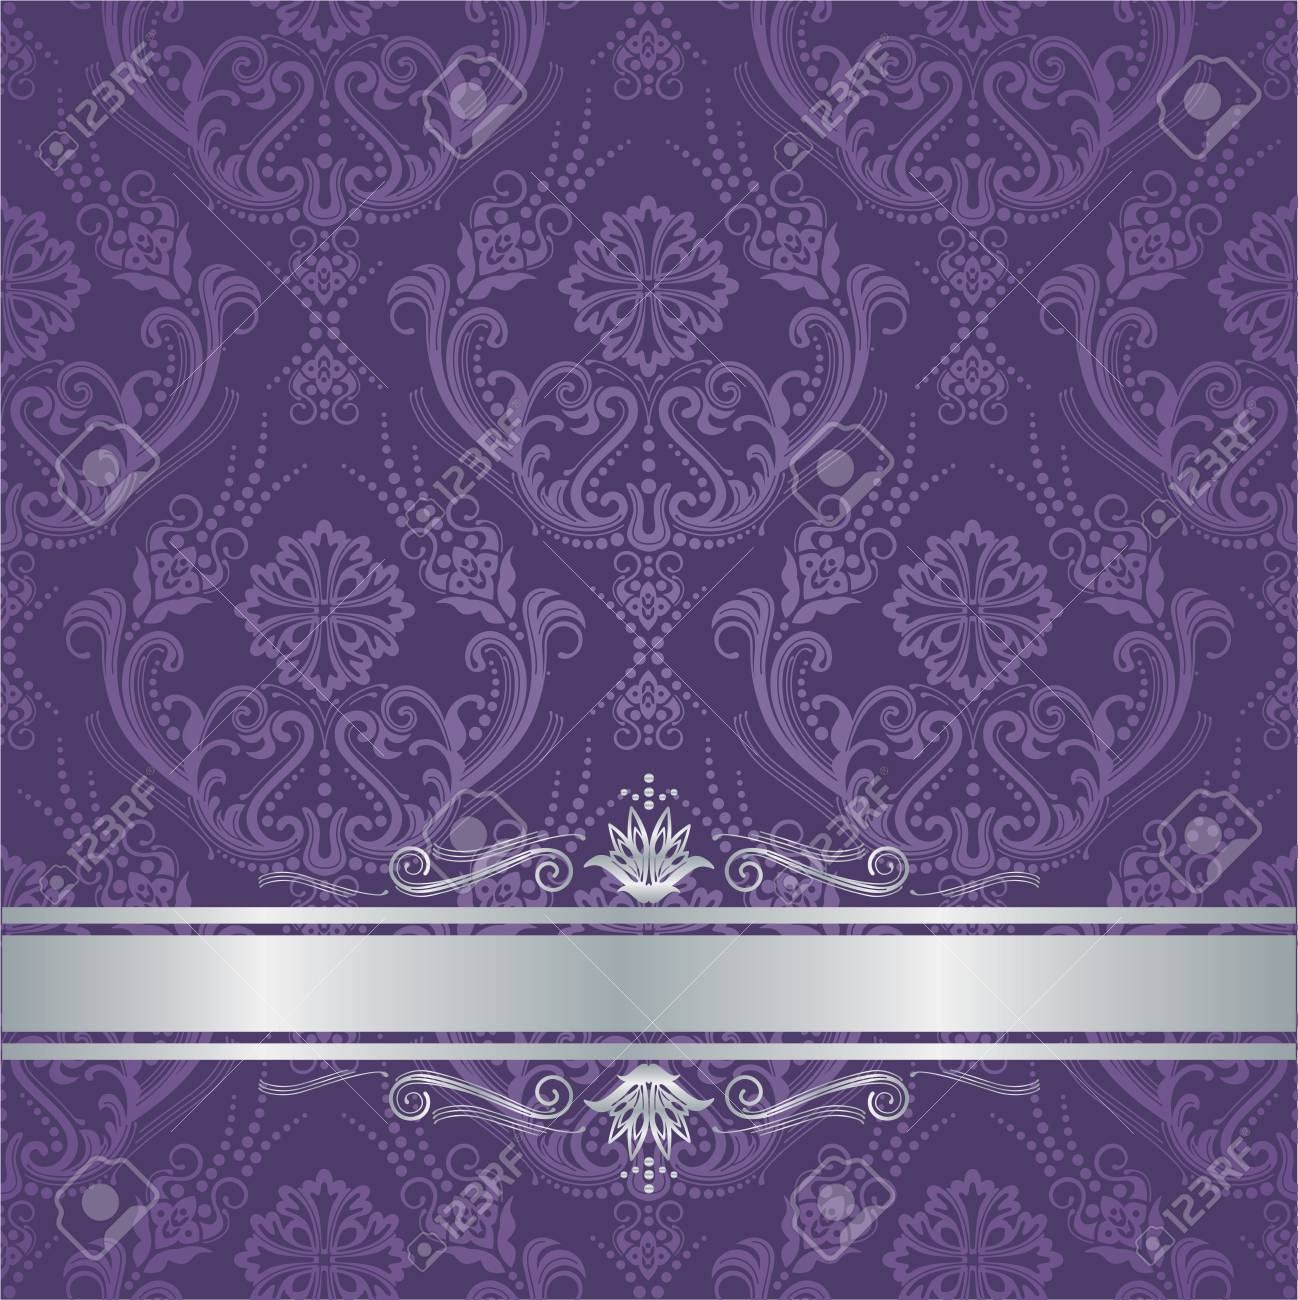 Luxury Purple Victorian Style Floral Damask Wallpaper Cover With Silver Border This Image Is A